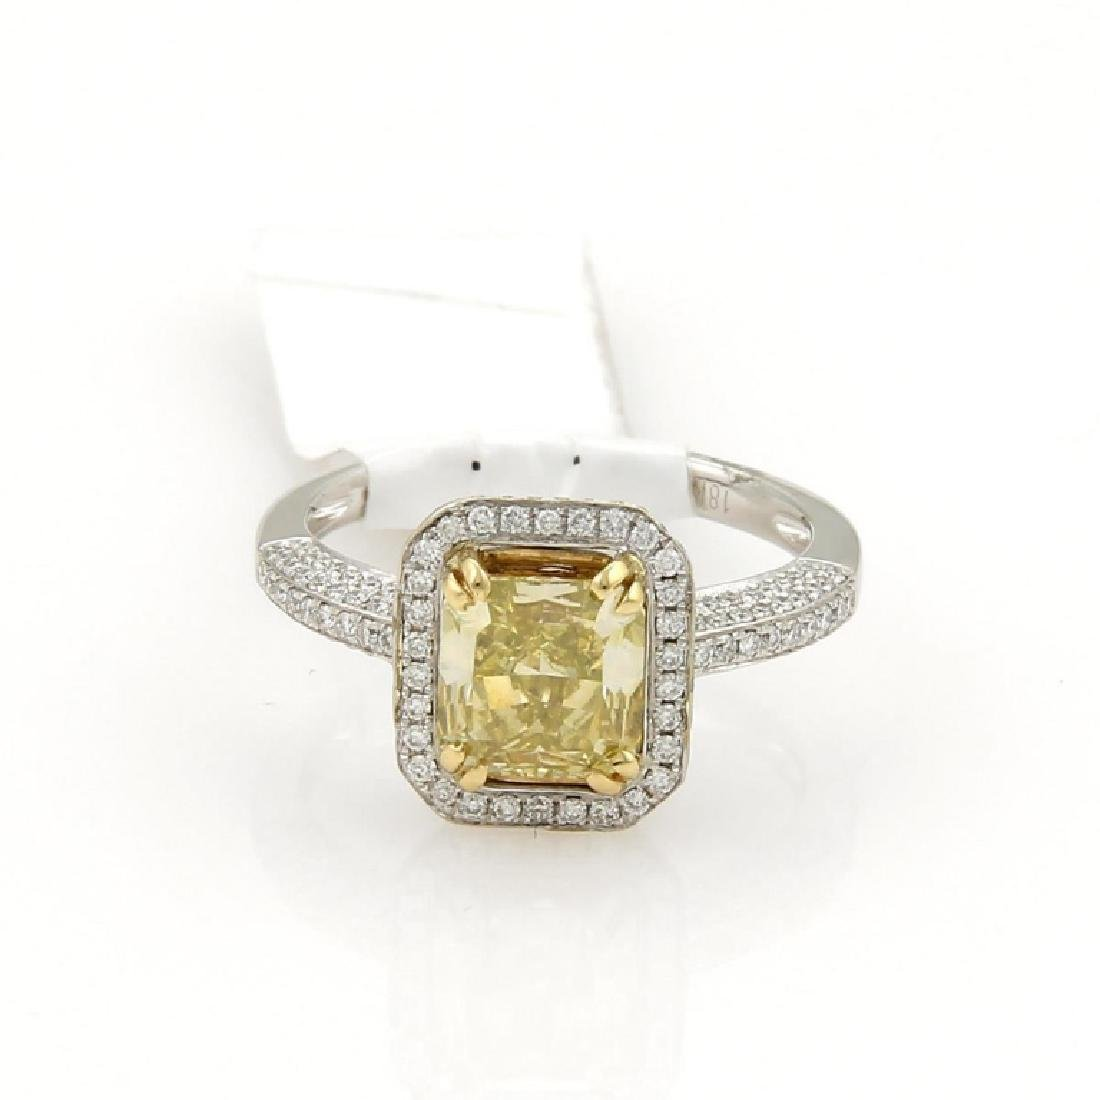 GIA CERTIFIED, 2.41 TCW RADIANT ENGAGEMENT RING